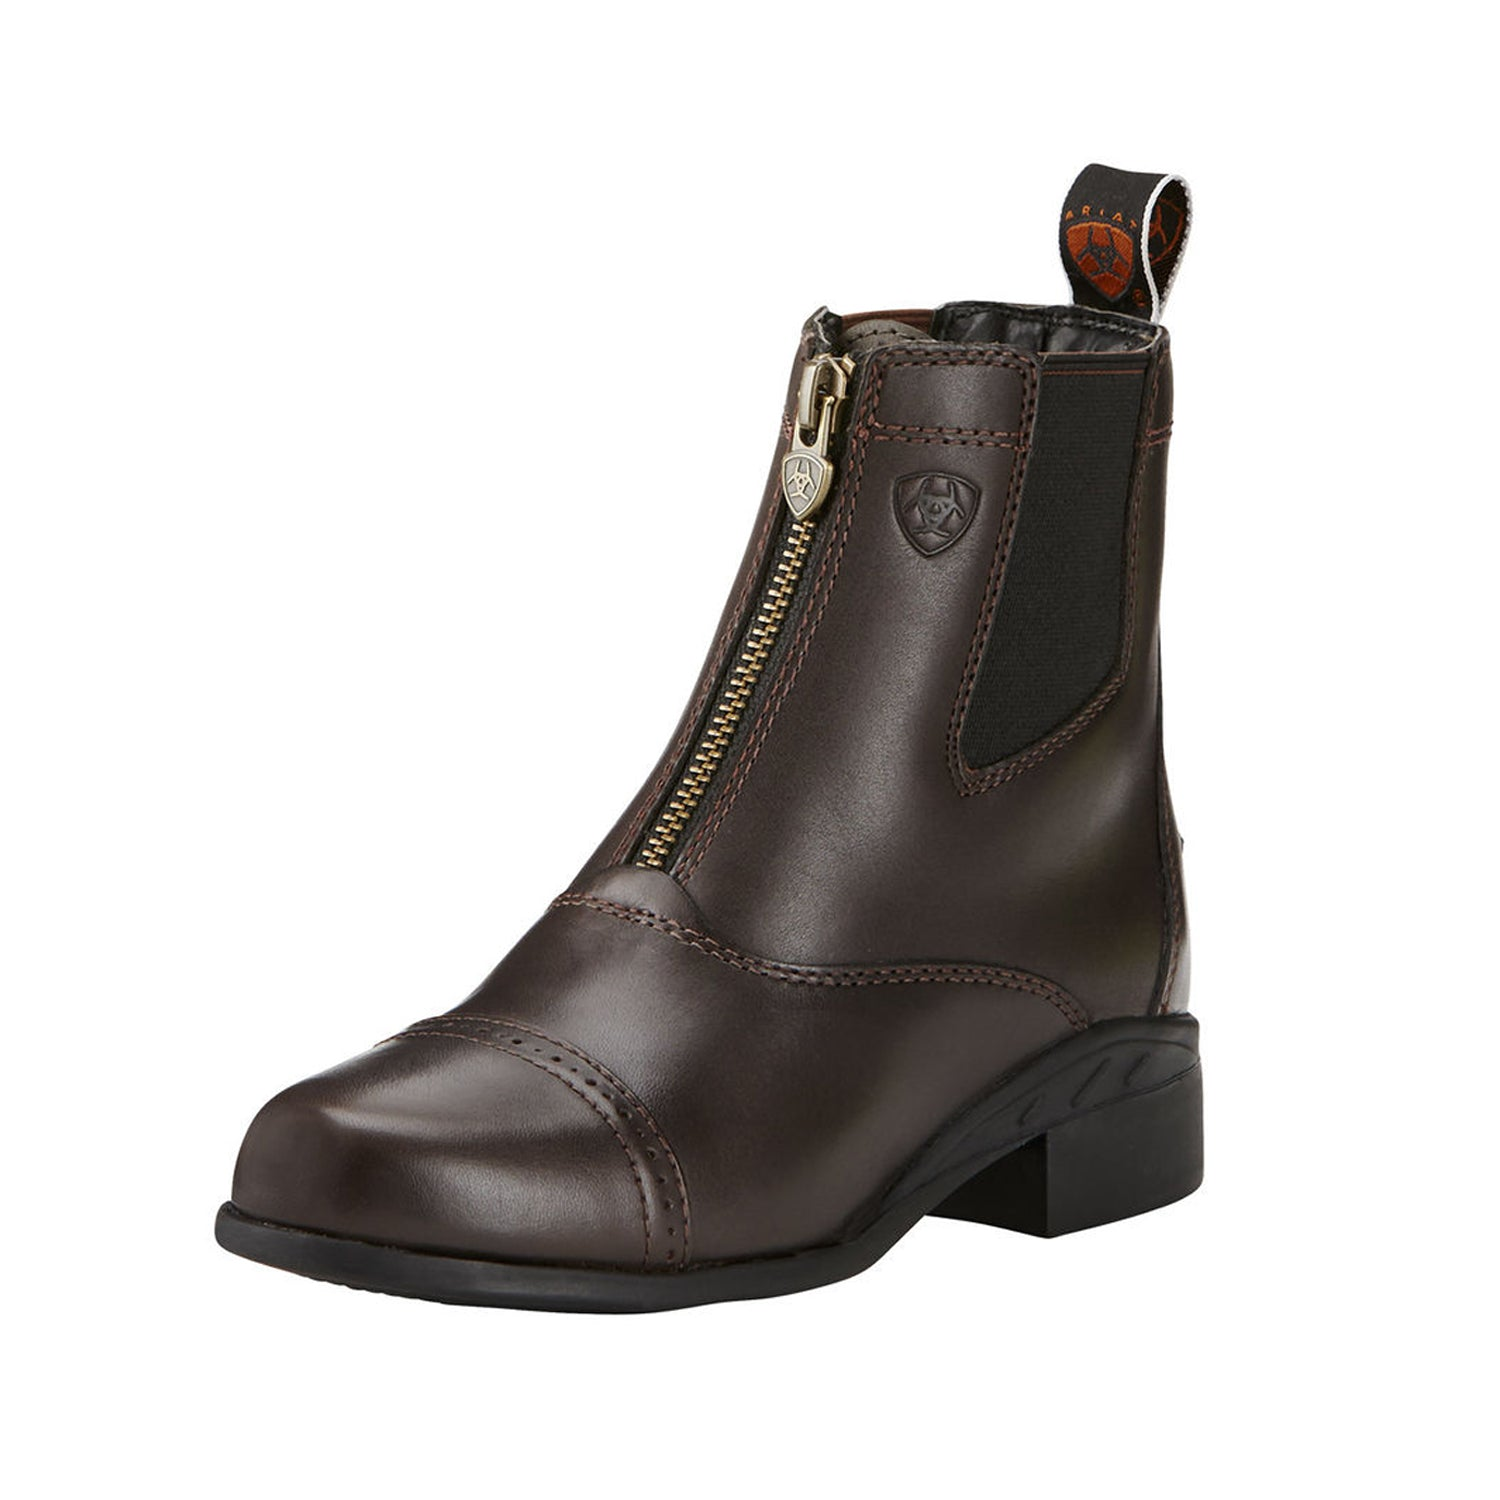 Ariat Devon III Zip Children's Paddock Boot - North Shore Saddlery